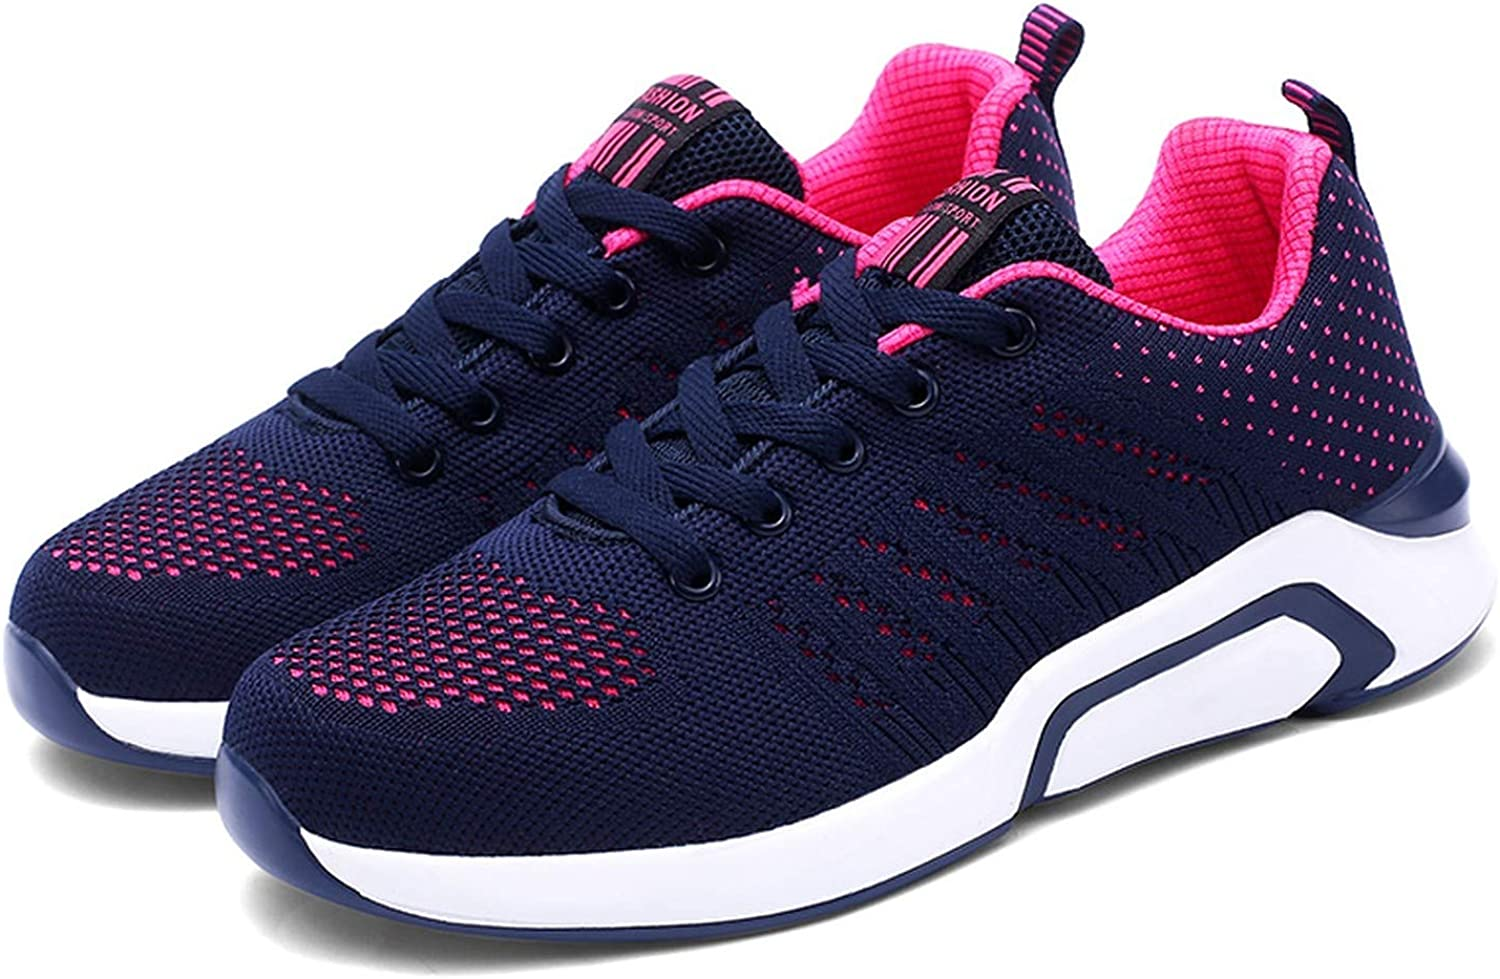 Little Happiness- 2019 Women shoesrs Platform Sneakers Outdoor Running shoes Mesh Lace-Up Sewing Med Wedges shoes